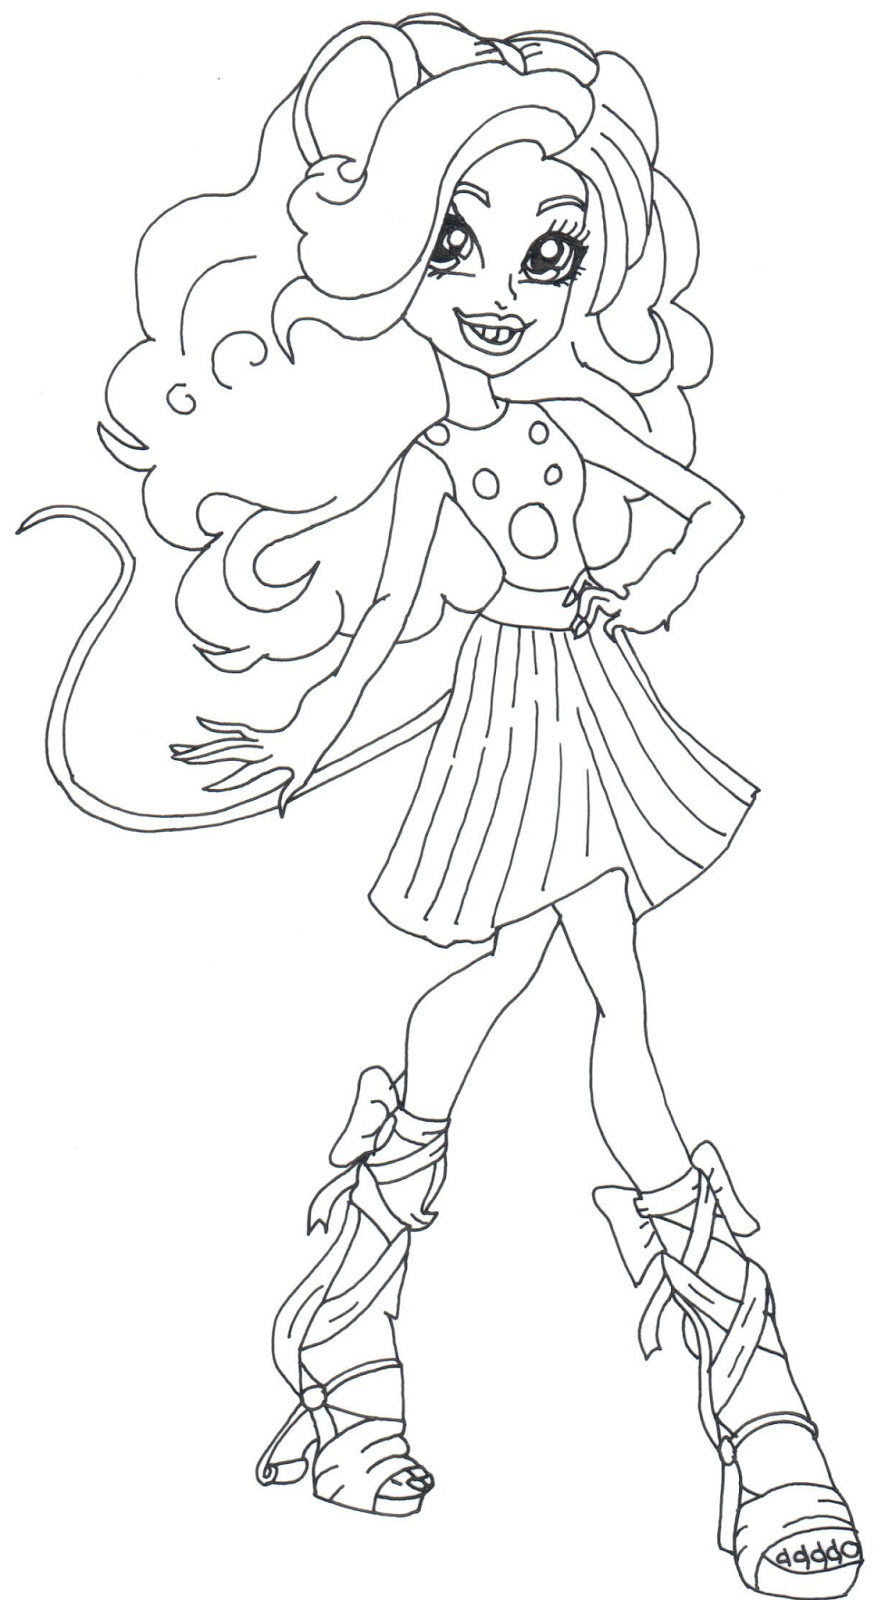 Monster High Printable Coloring Pages Ausmalbilder Fr Kinder